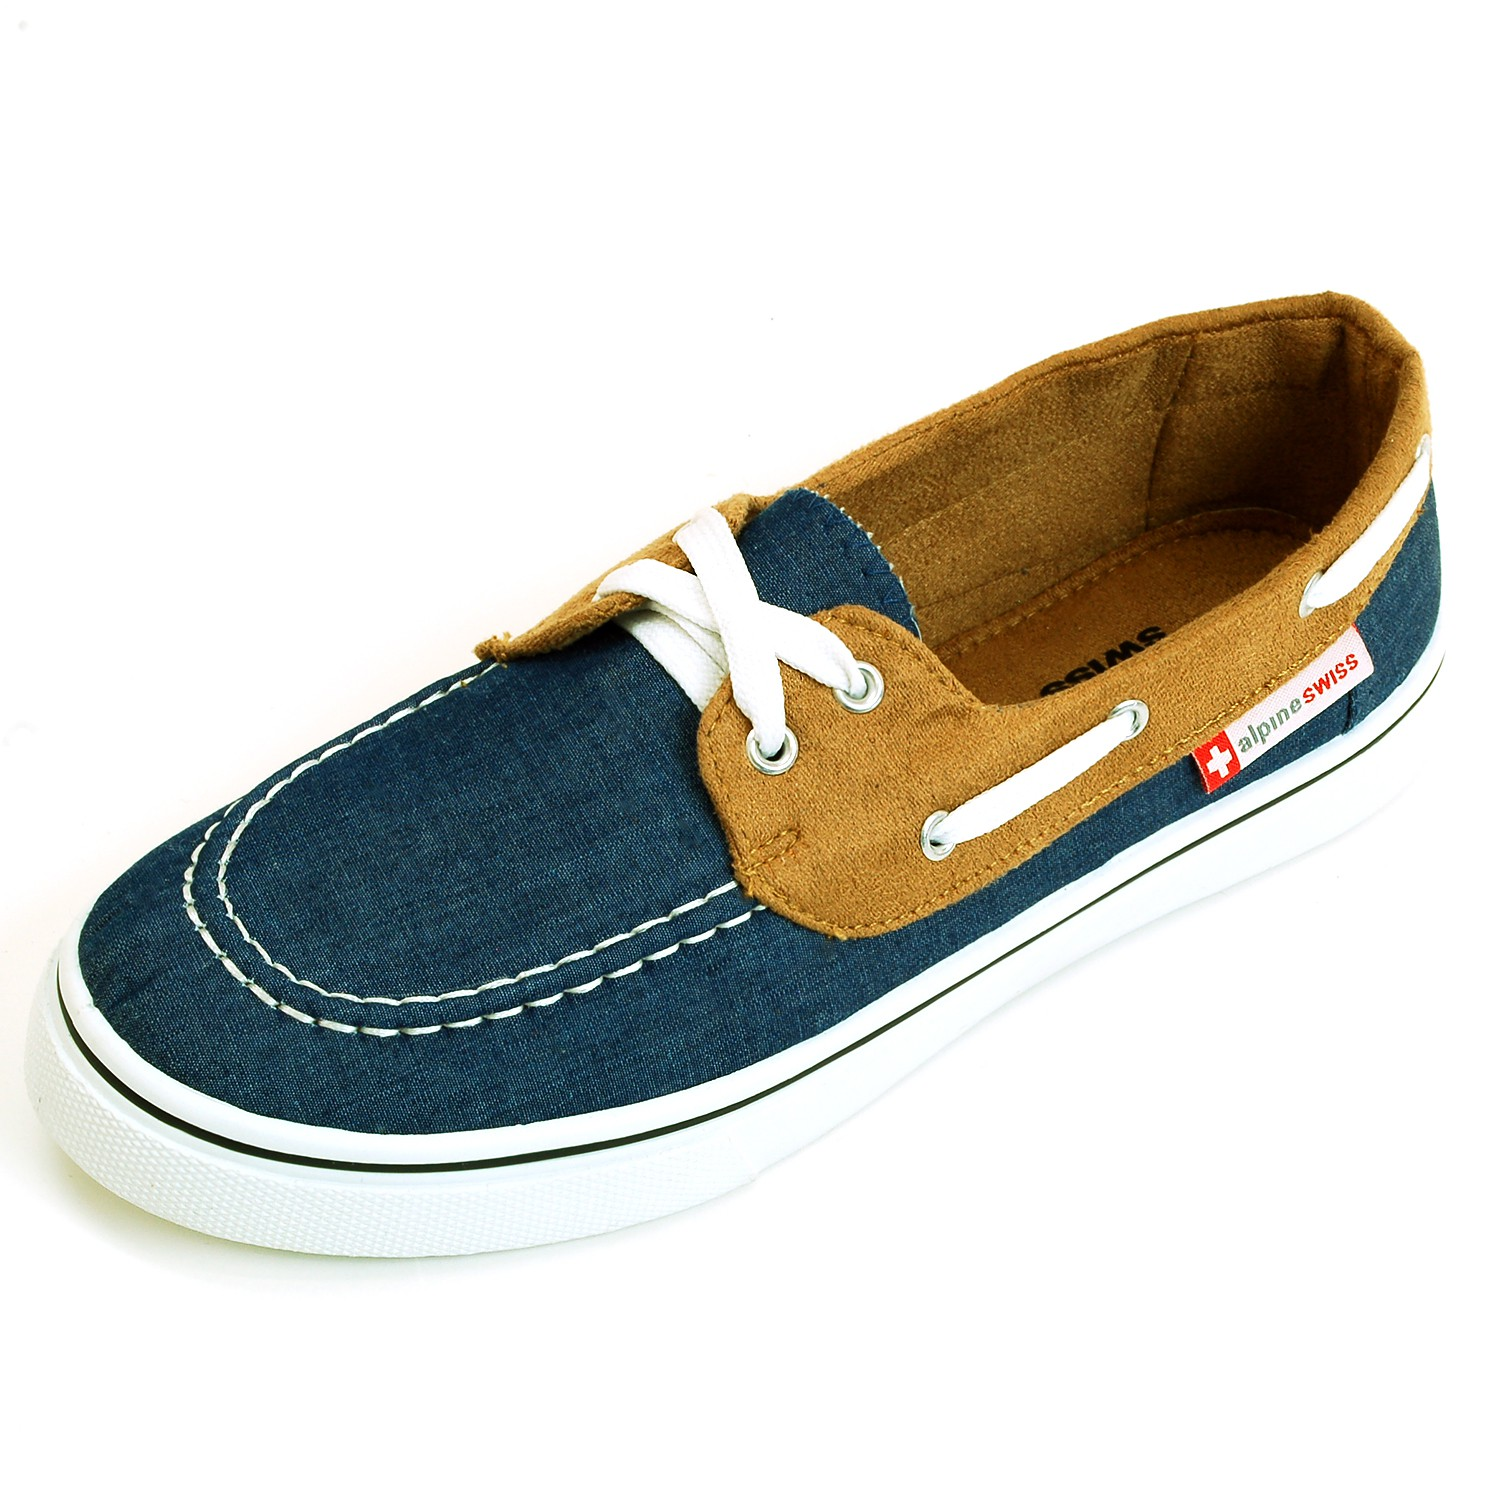 Find great deals on eBay for mens boat deck shoes. Shop with confidence.